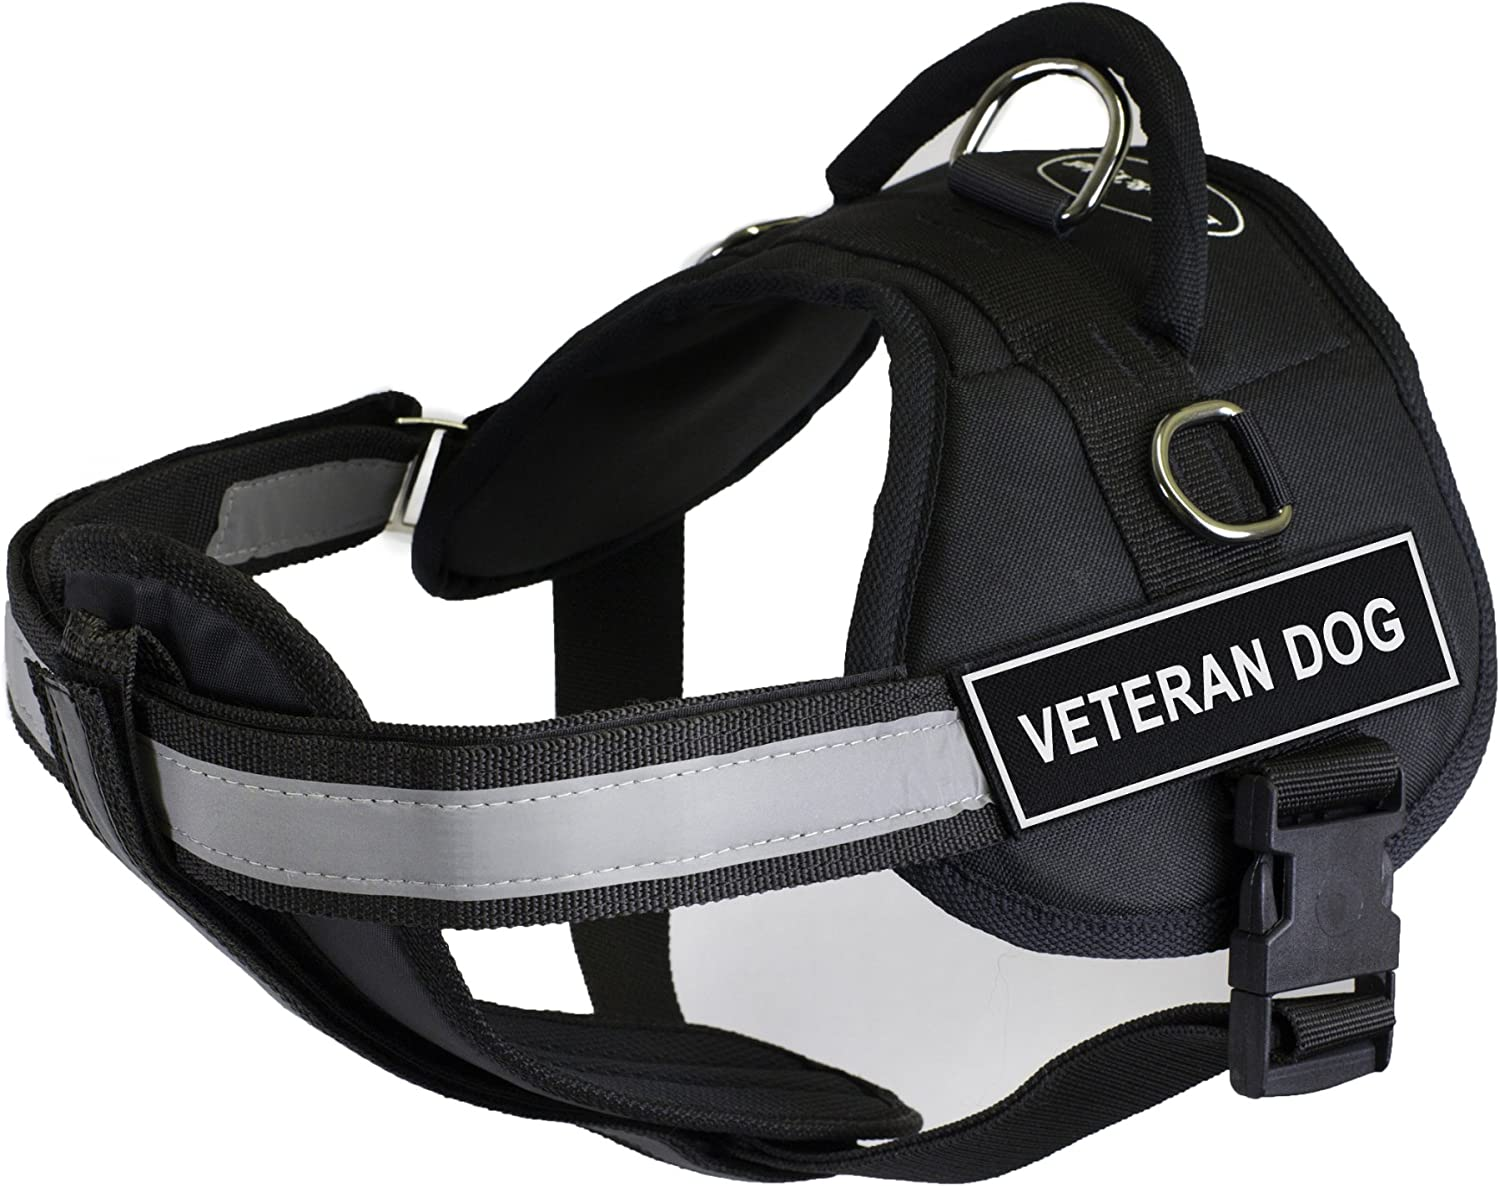 Dean & Tyler 25Inch to 34Inch Pet Harness with Padded Reflective Chest Straps, Small, Veteran Dog, Black